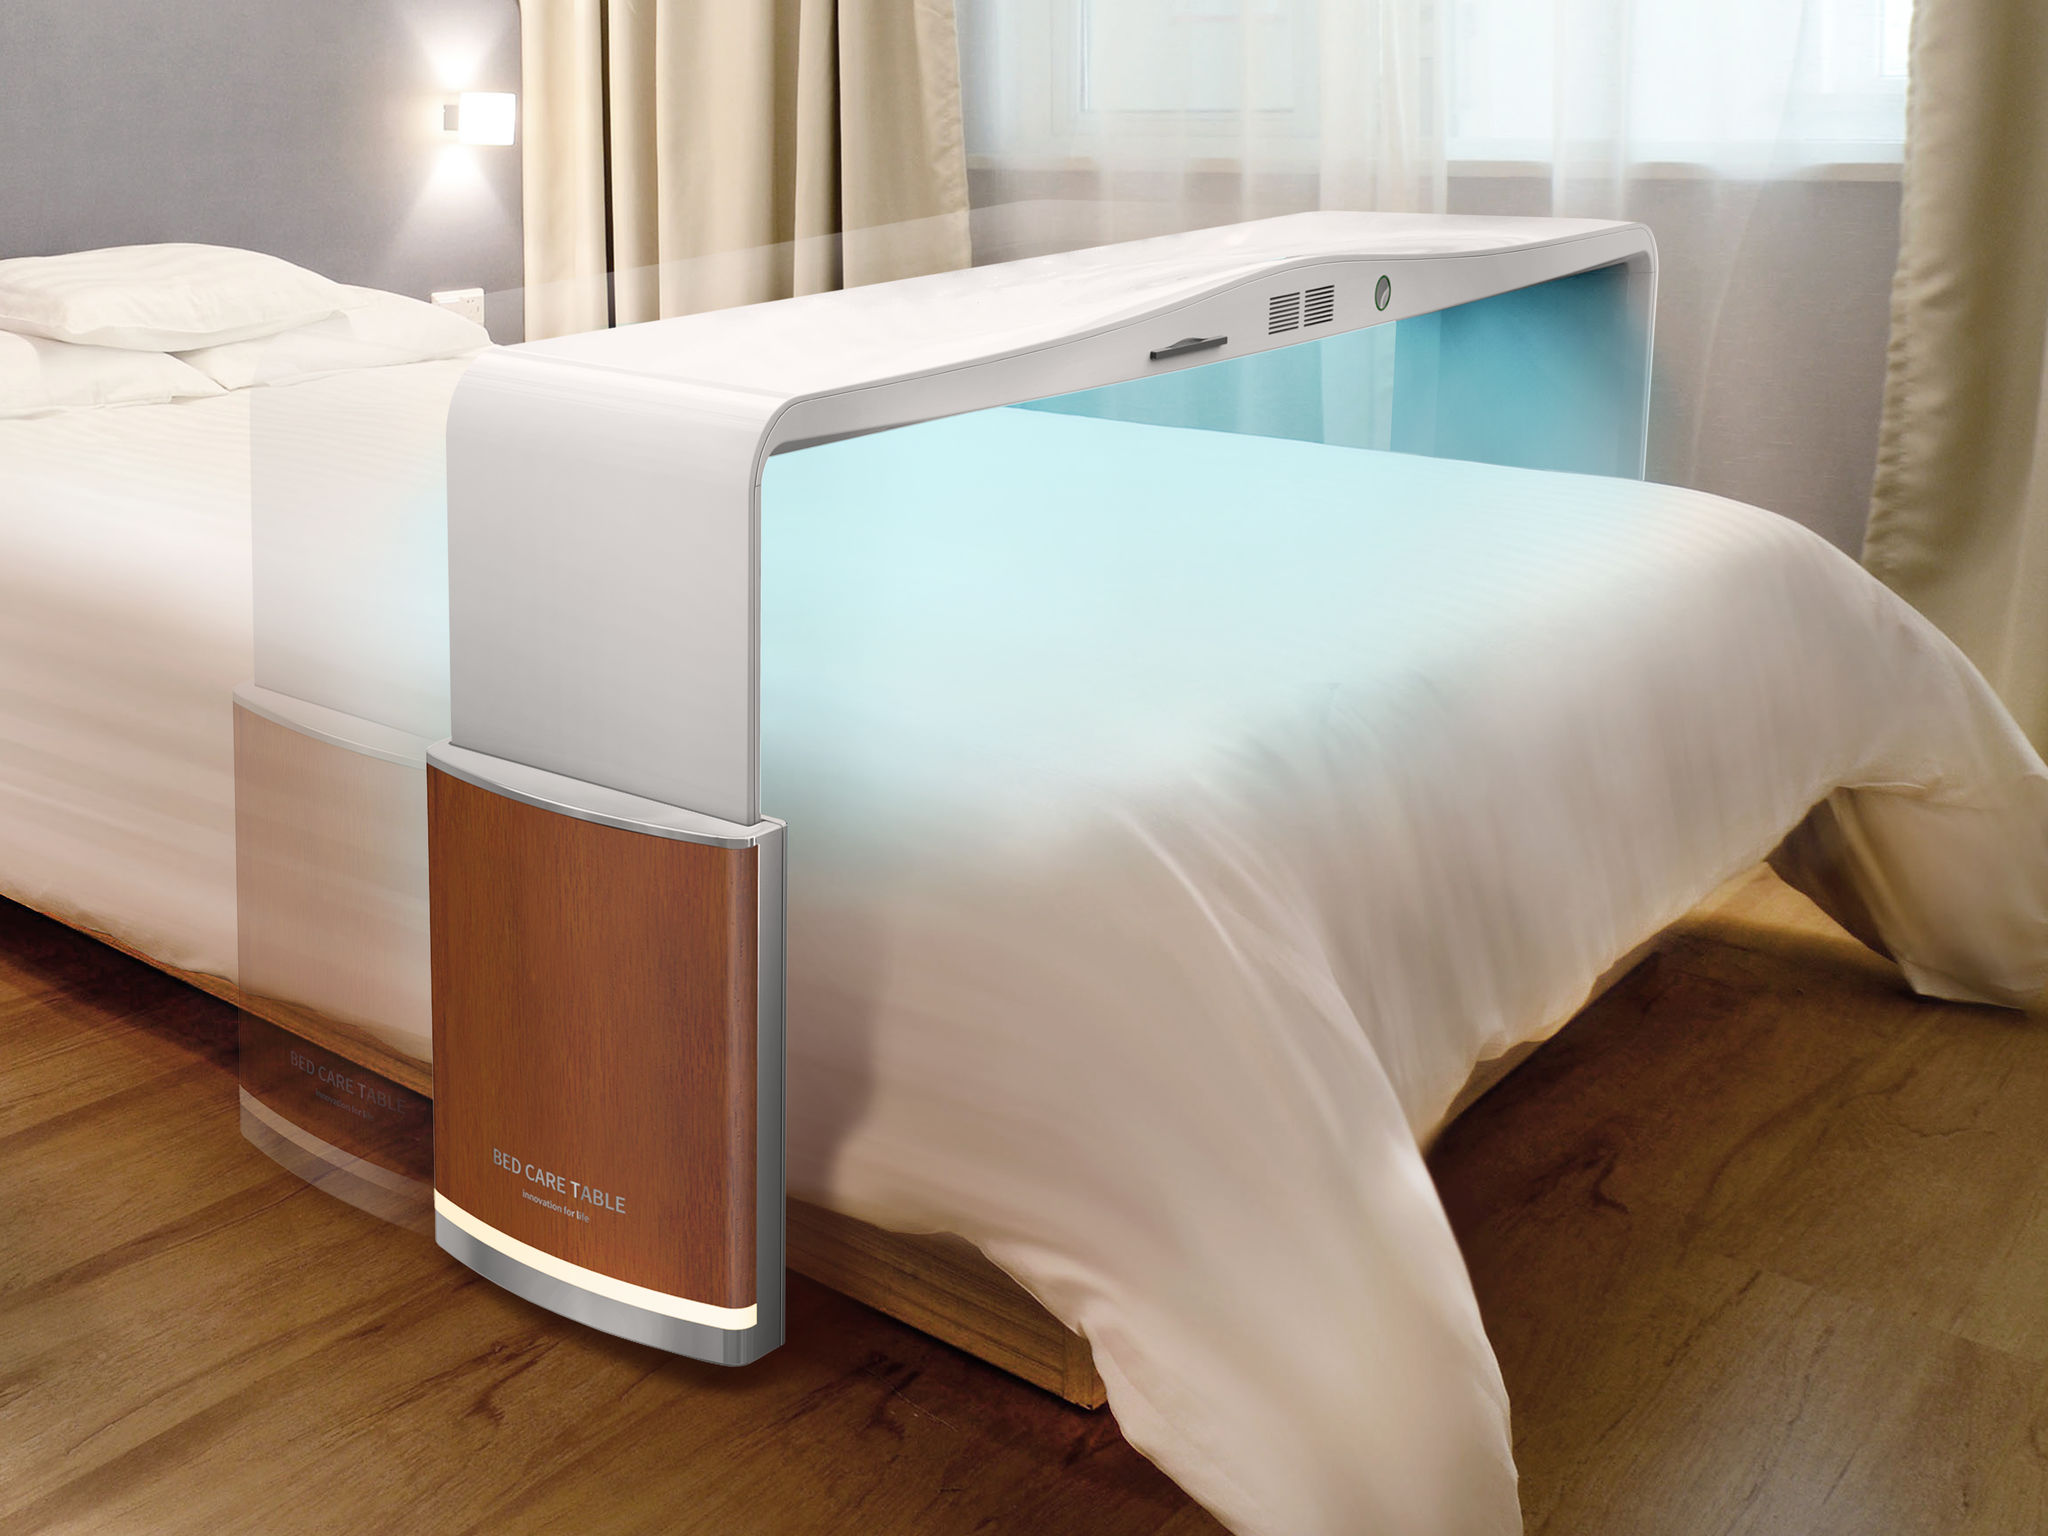 Bed care table entry if world design guide for Bed design pic